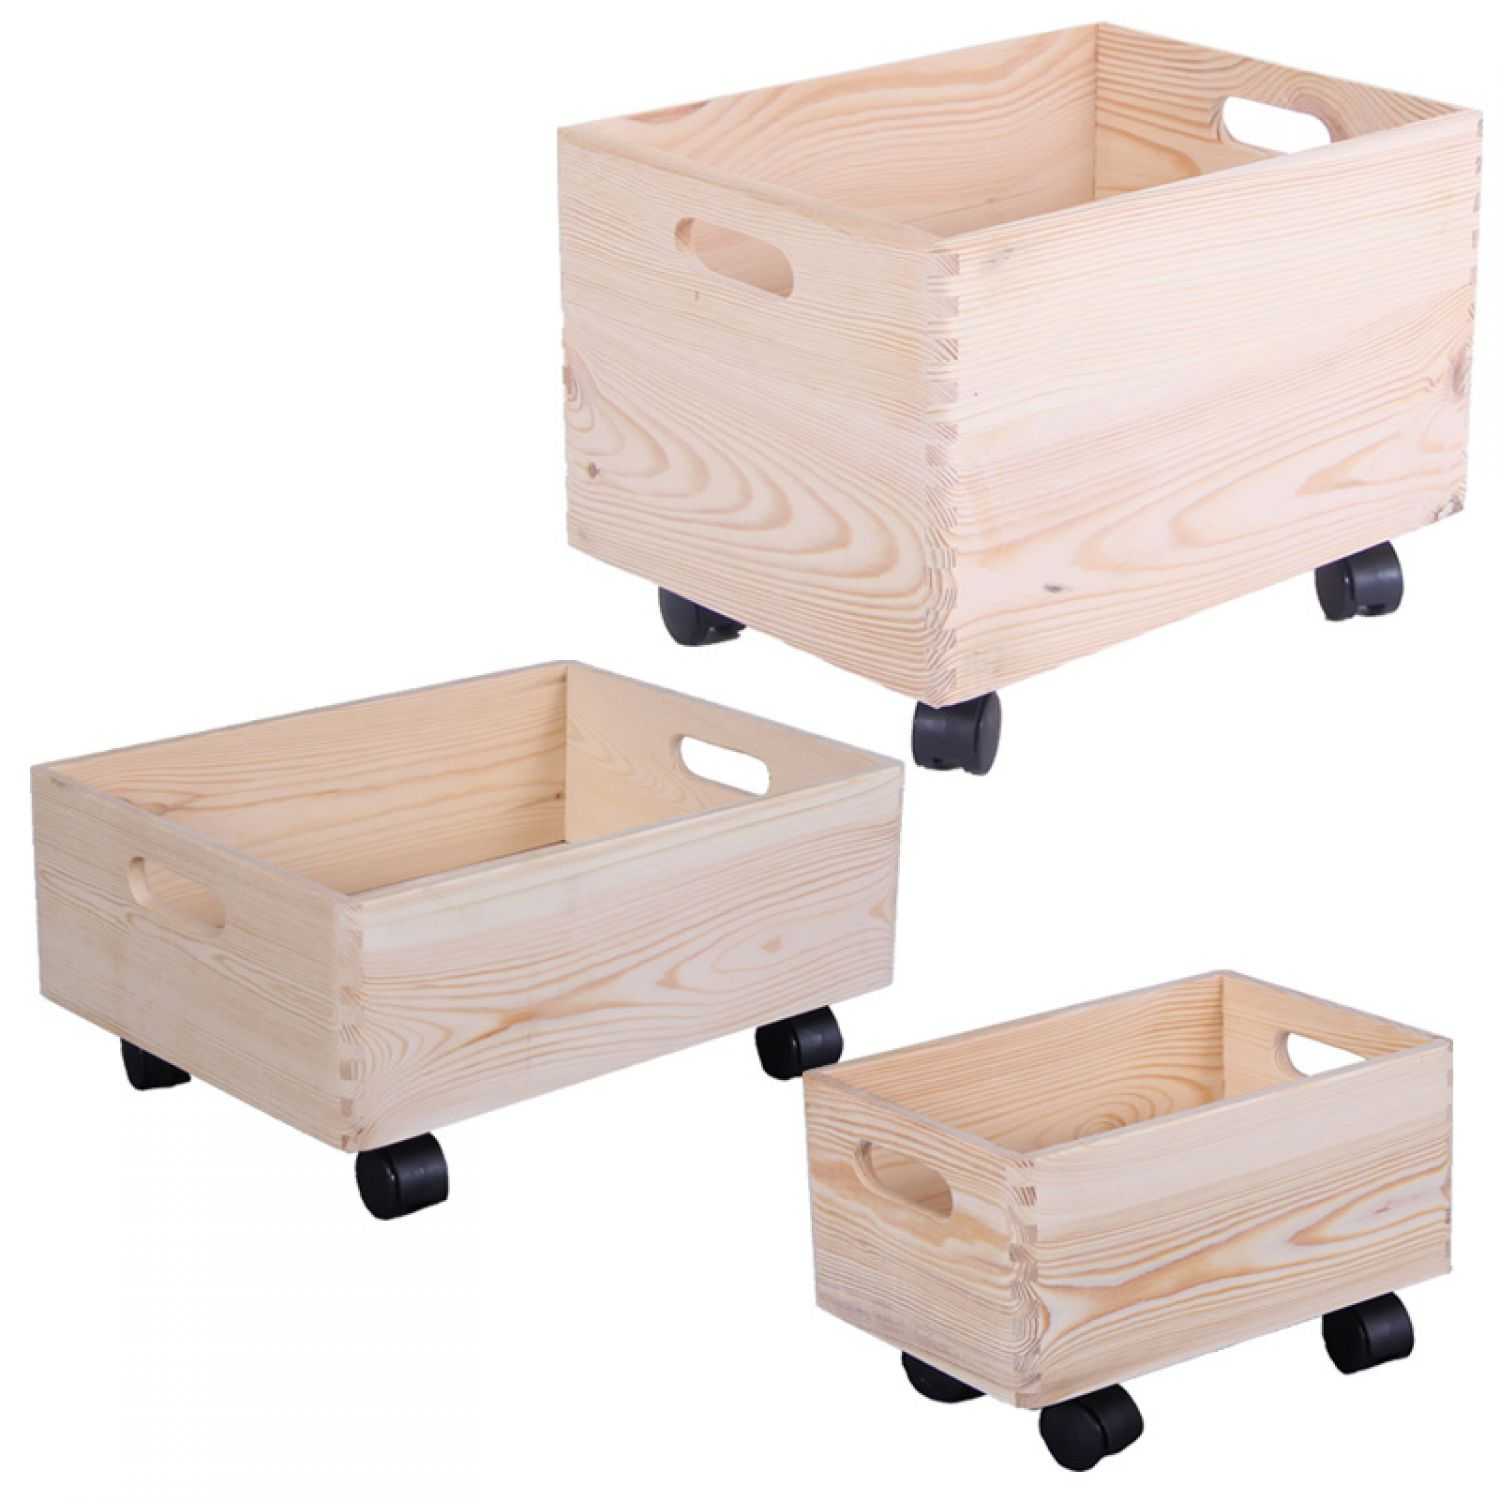 holzkiste box auf rollen aufbewahrungsbox holzbox kinderzimmer holzkasten ebay. Black Bedroom Furniture Sets. Home Design Ideas